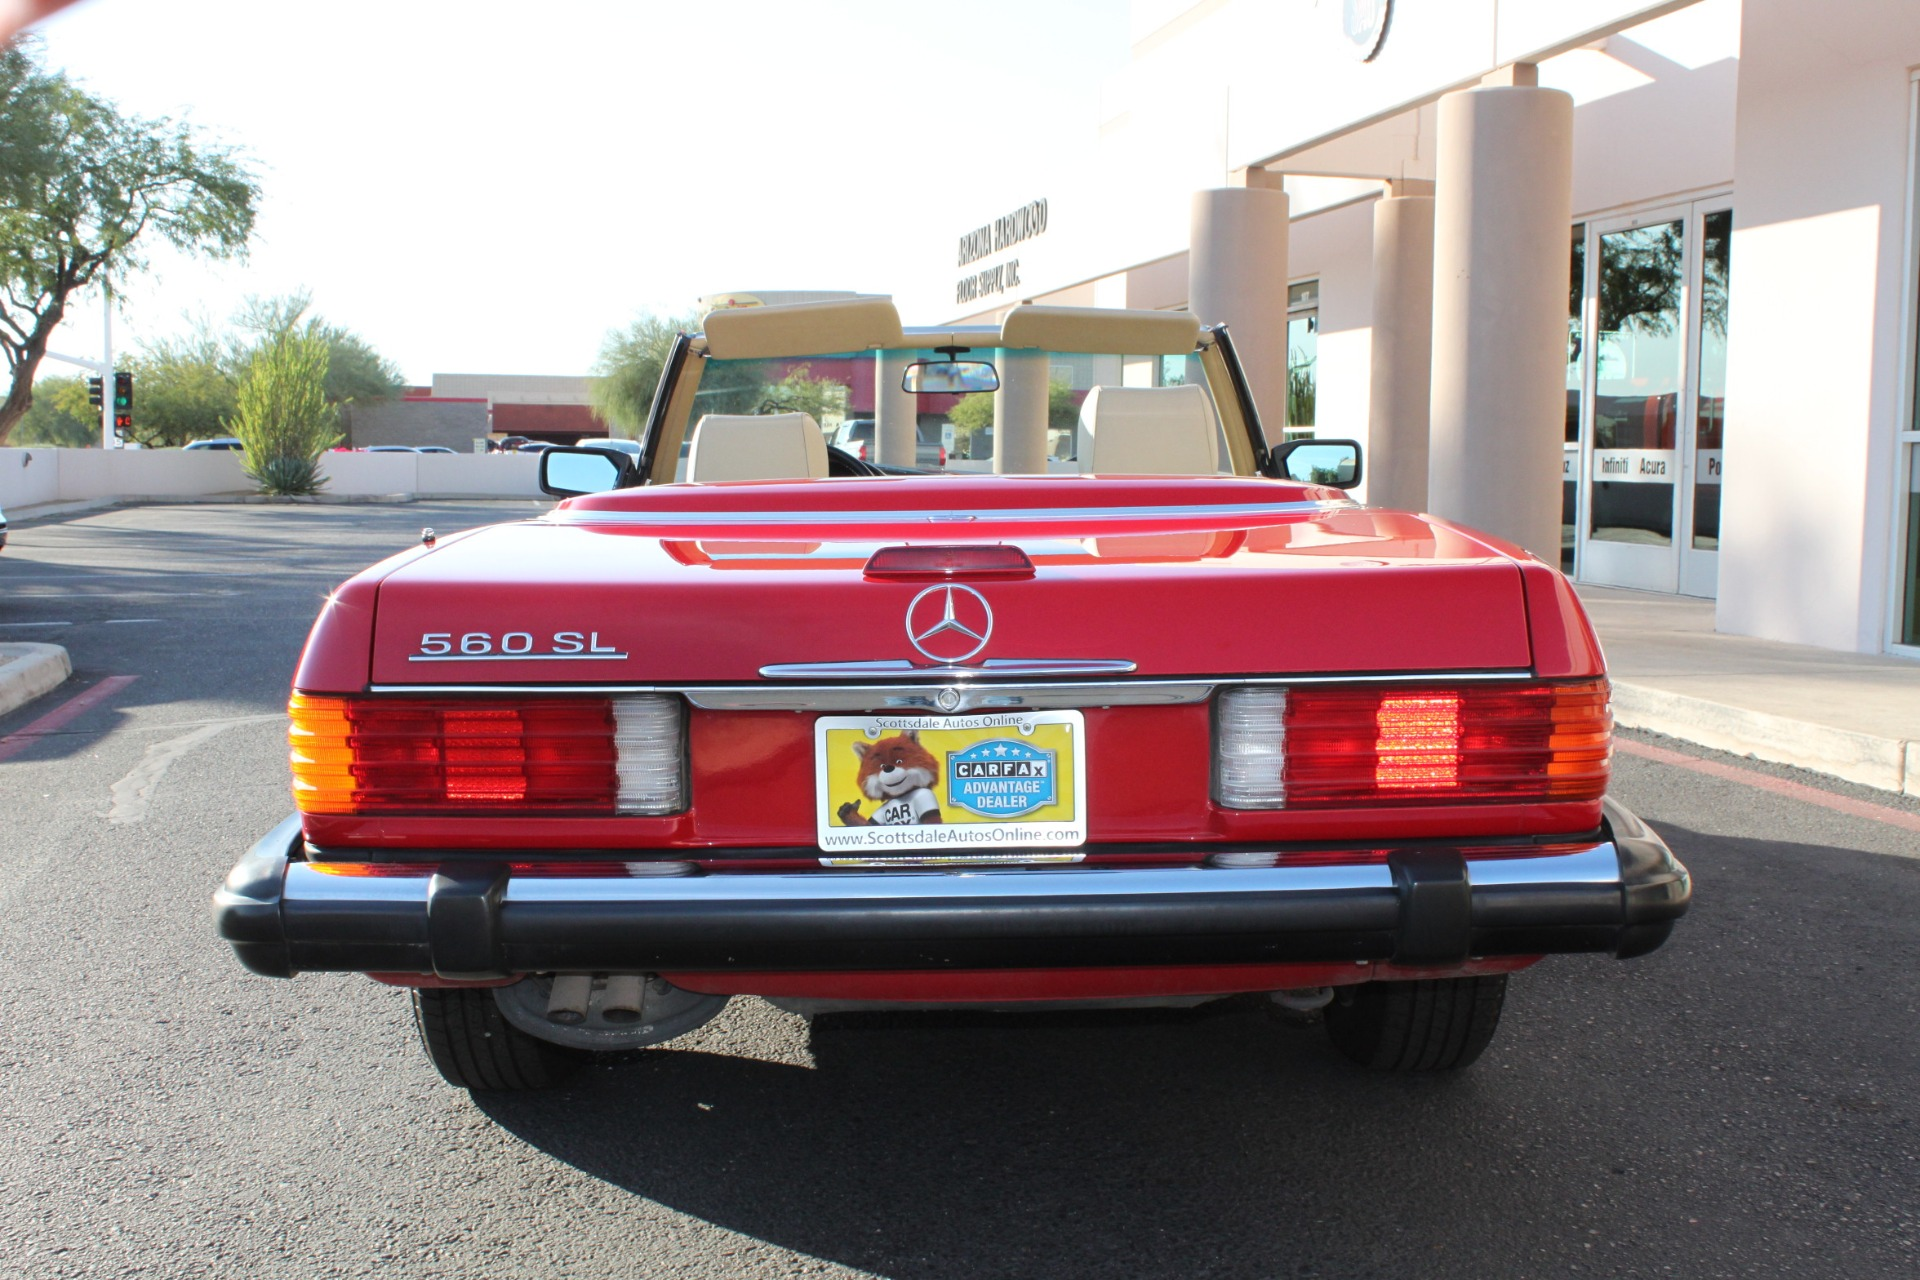 Used-1989-Mercedes-Benz-560-Series-560SL-Mopar